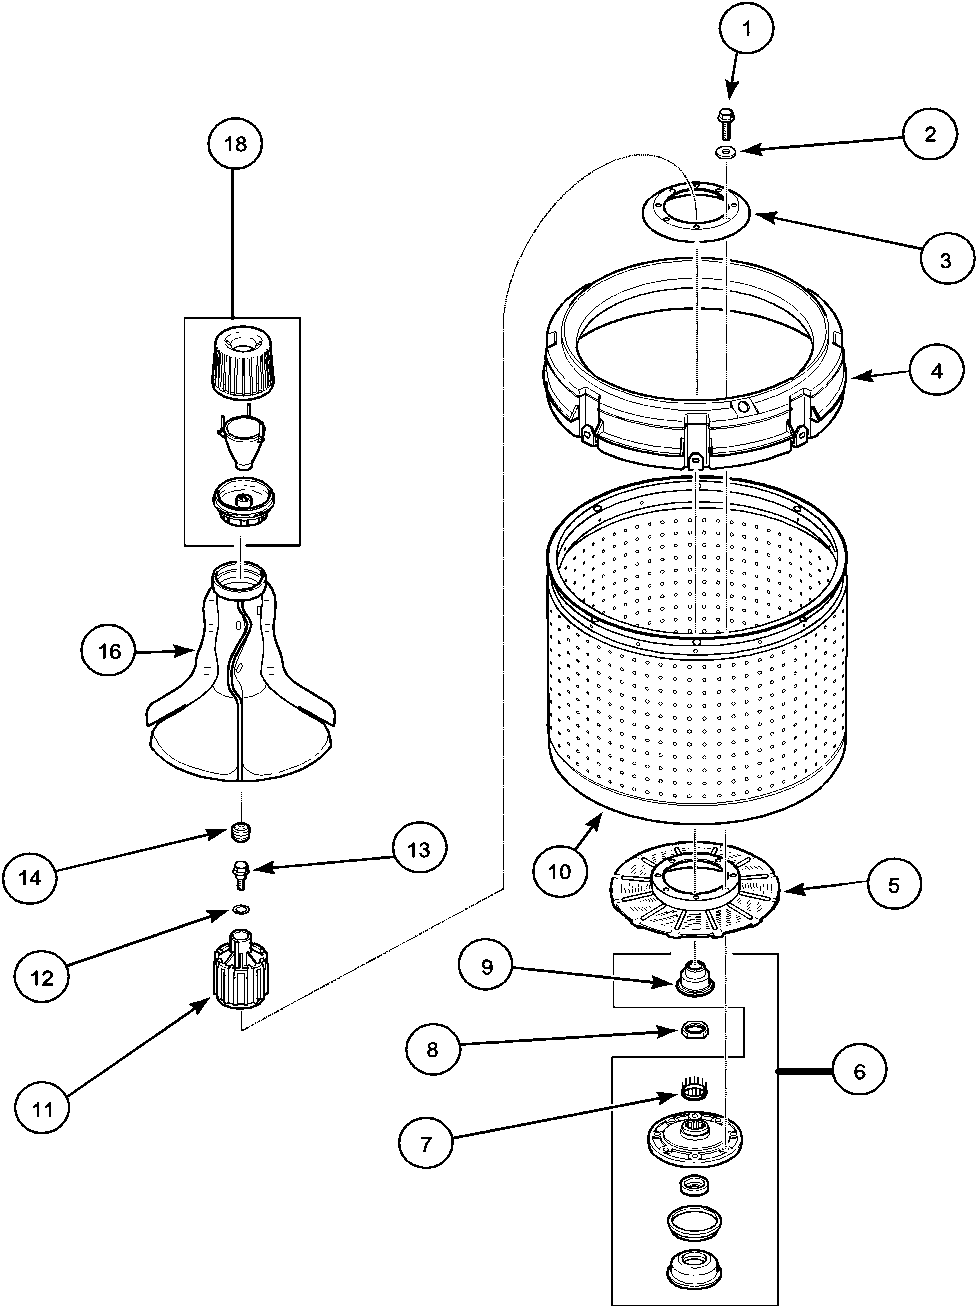 whirlpool gold refrigerator parts diagram 1985 ford alternator wiring amana lwa40aw2 top loading washer timer stove clocks and appliance agitator drive bell wash tub